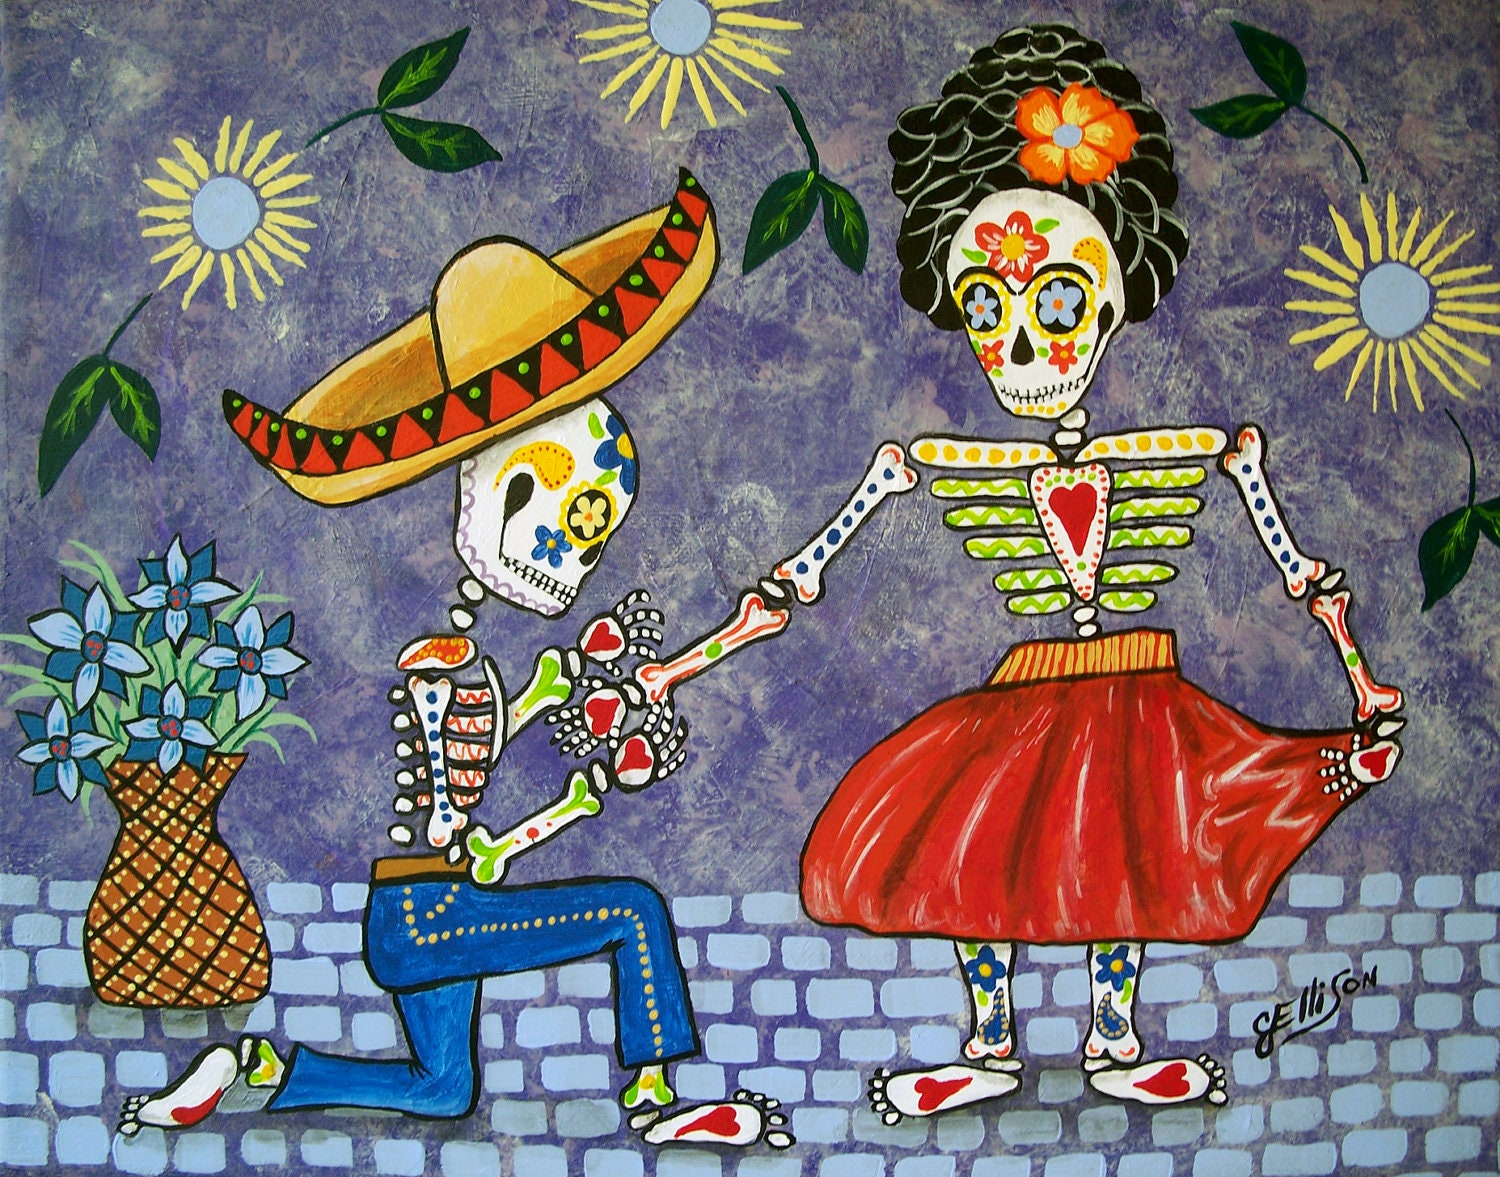 Frida kahlo and diego rivera the proposal 8 for Diego rivera day of the dead mural